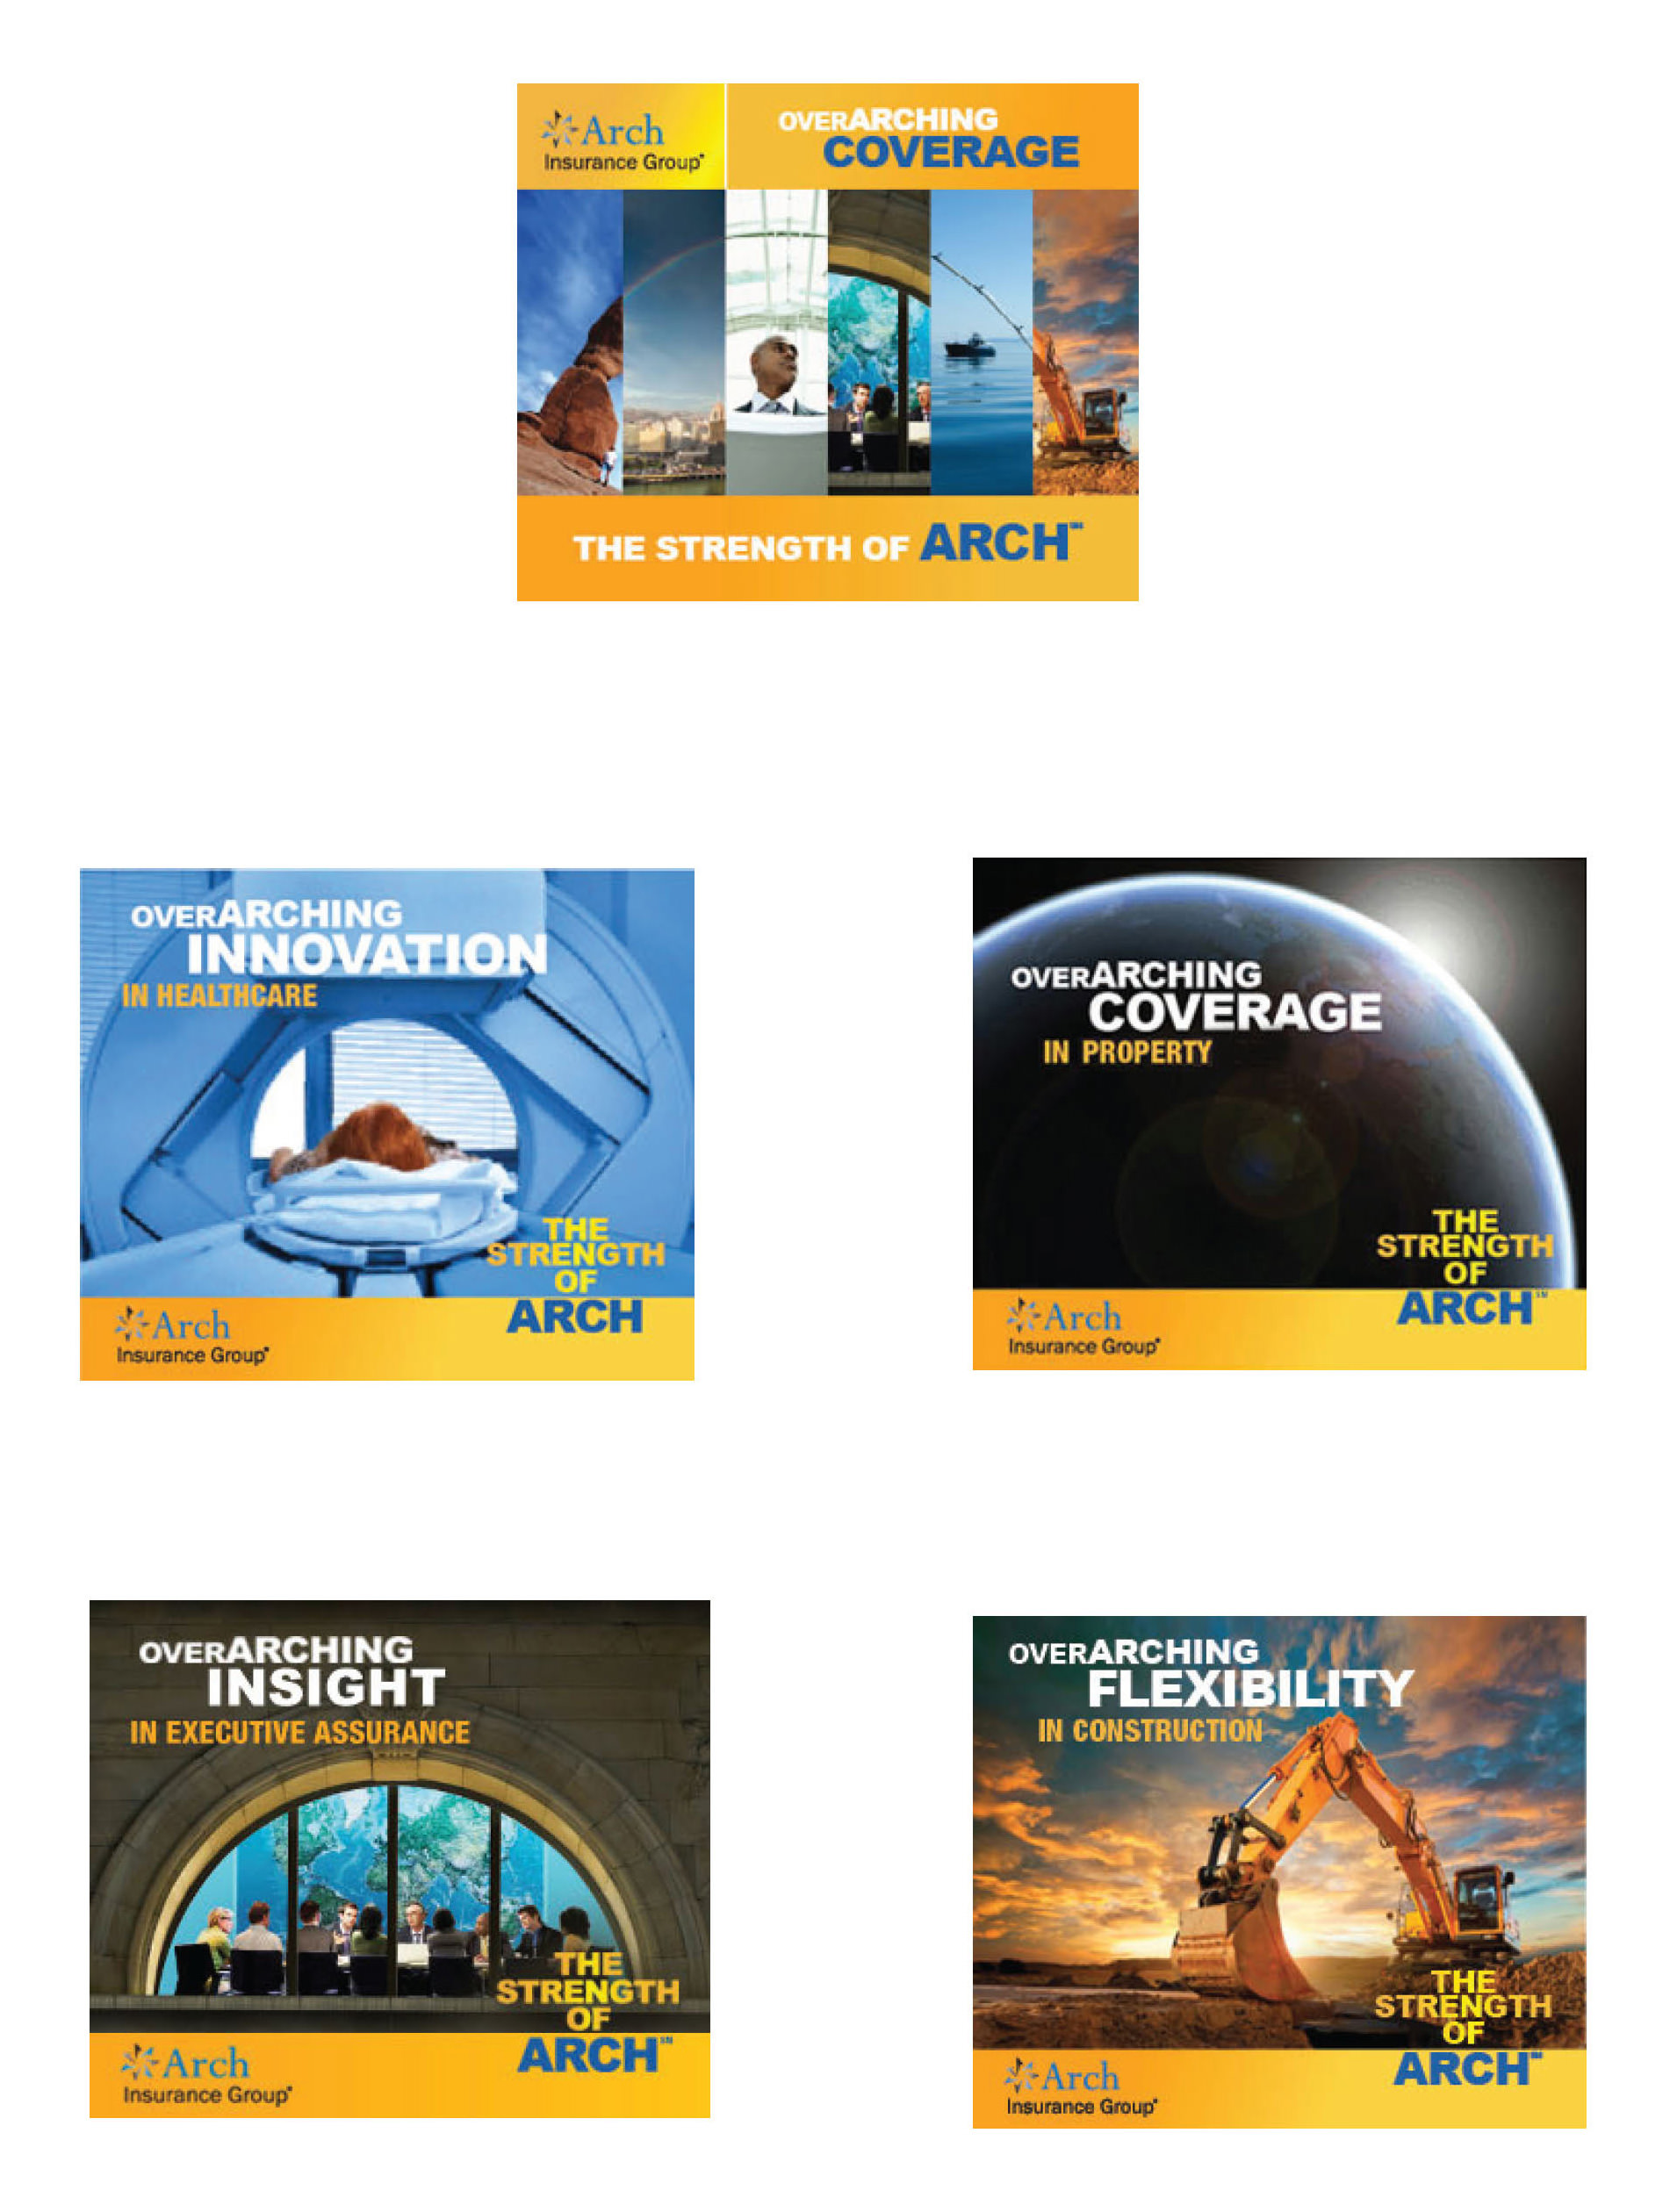 Arch Insurance Group 2013 Advertising and Marketing Campaign_Page_10